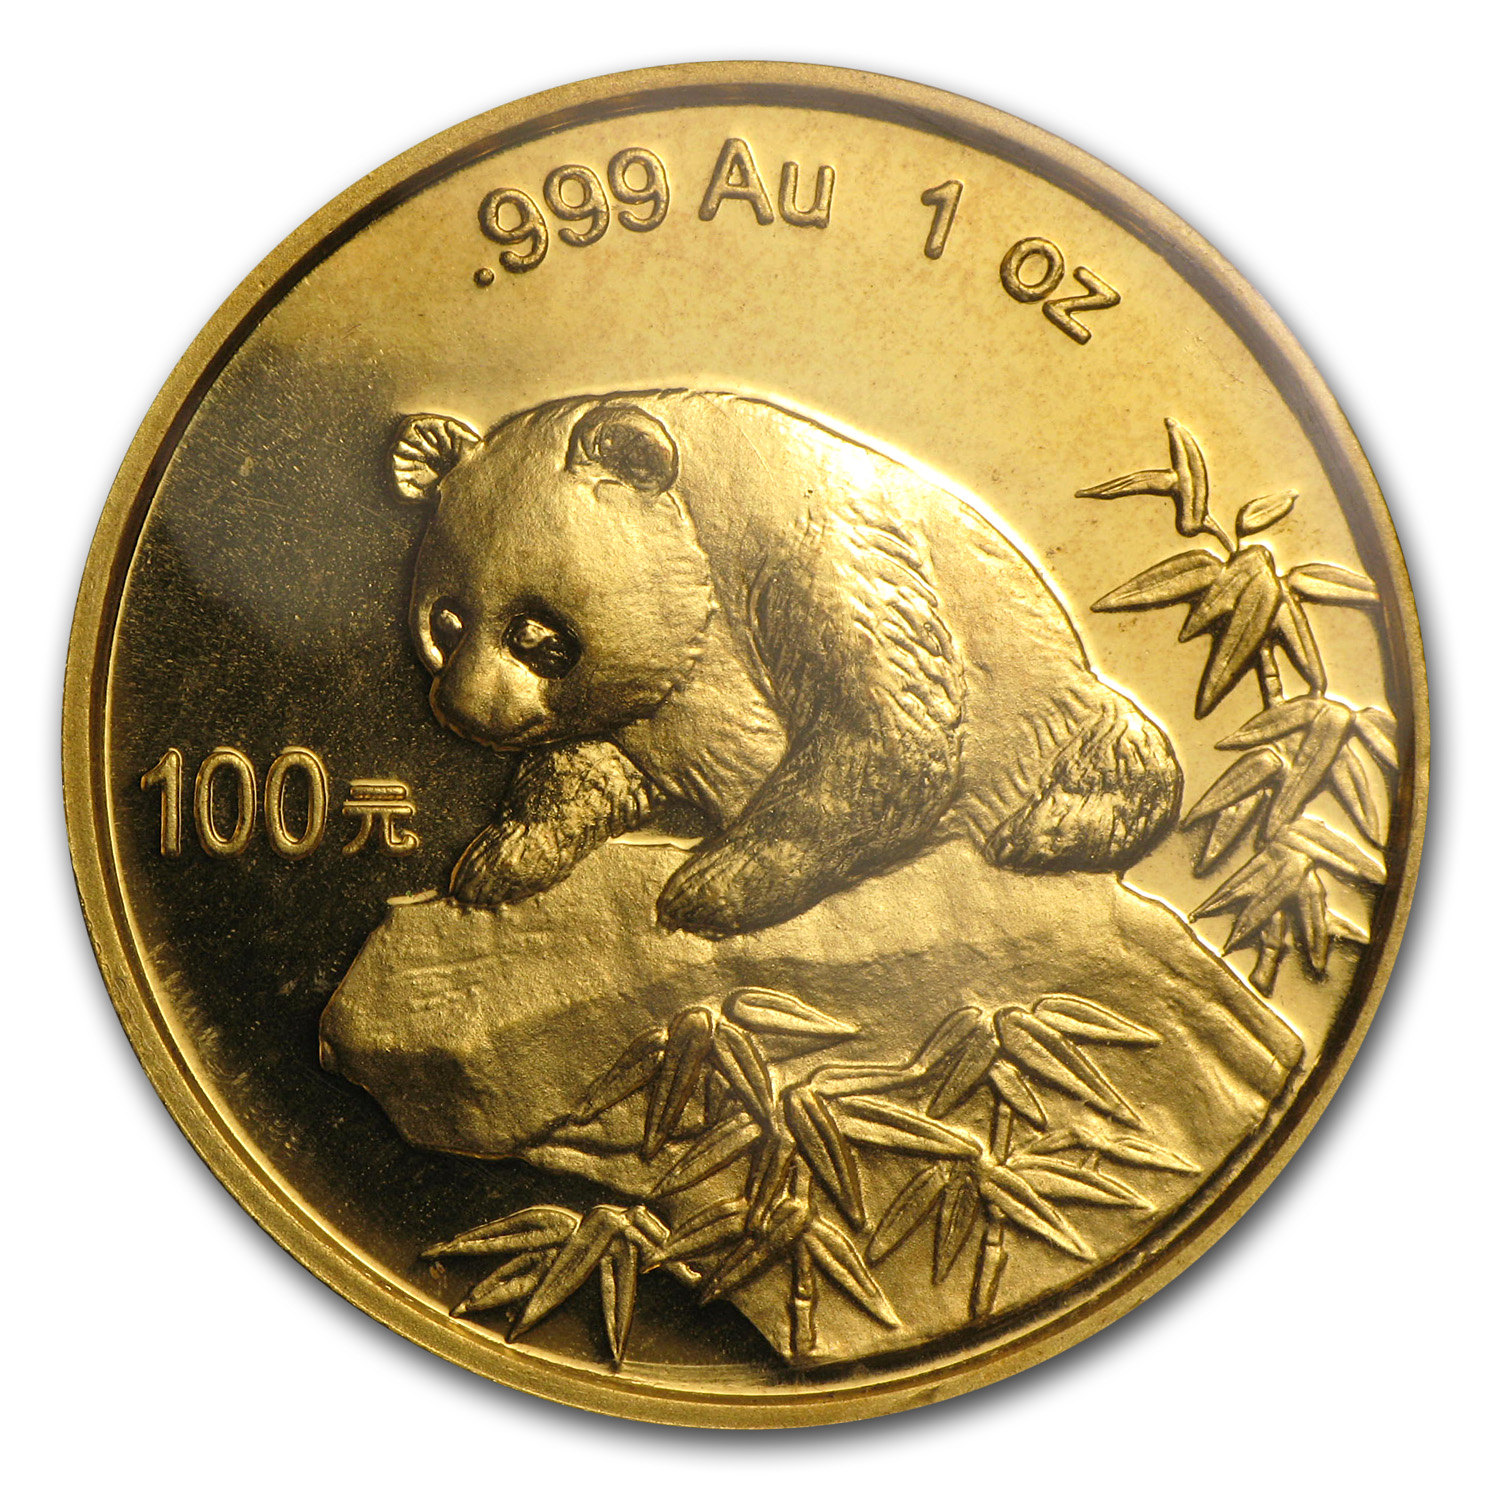 1999 China 1 oz Gold Panda Small Date BU (Sealed)